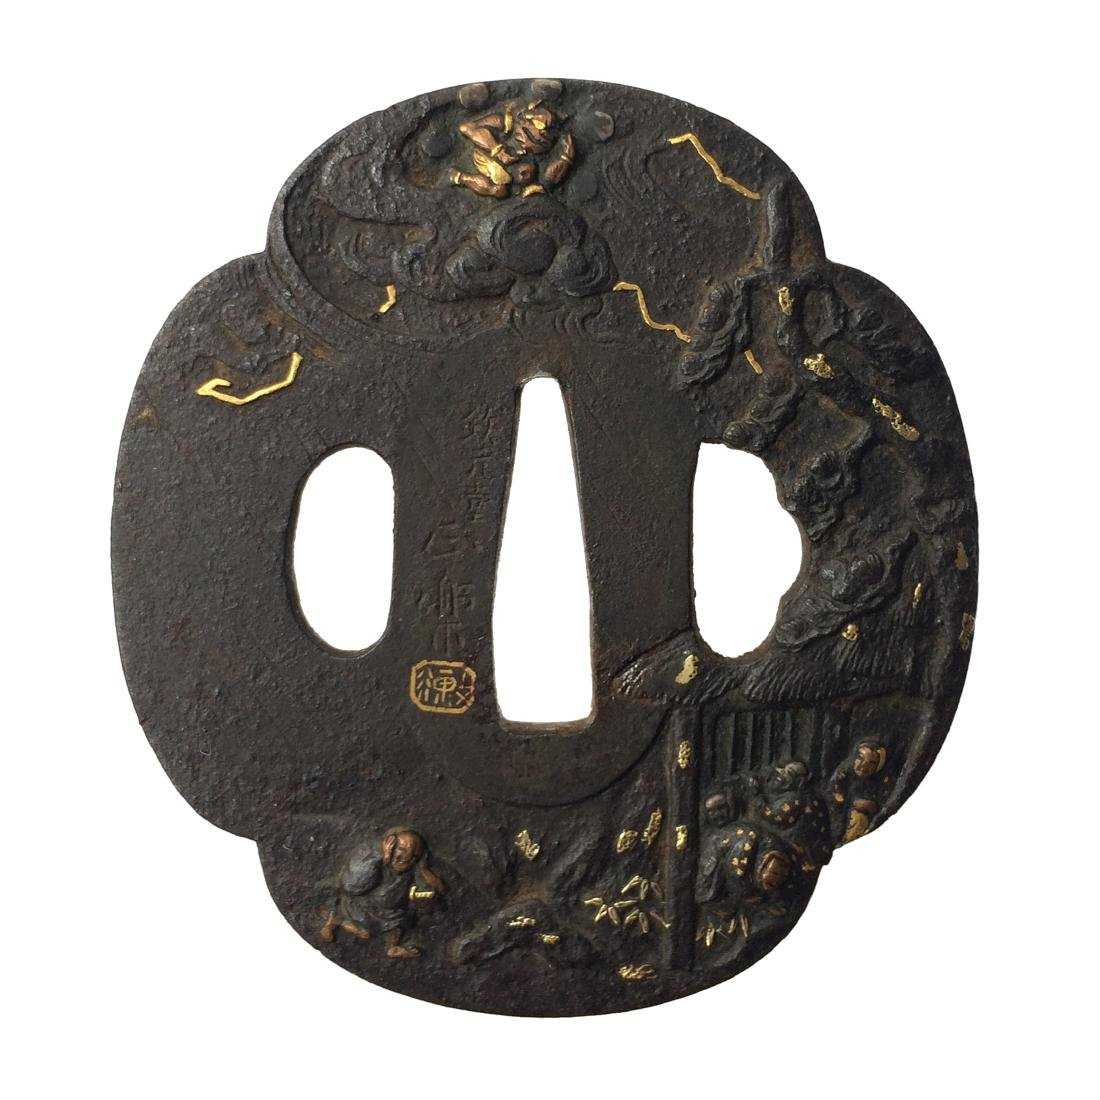 Signed iron tsuba carved and inlaid with gold, copper,